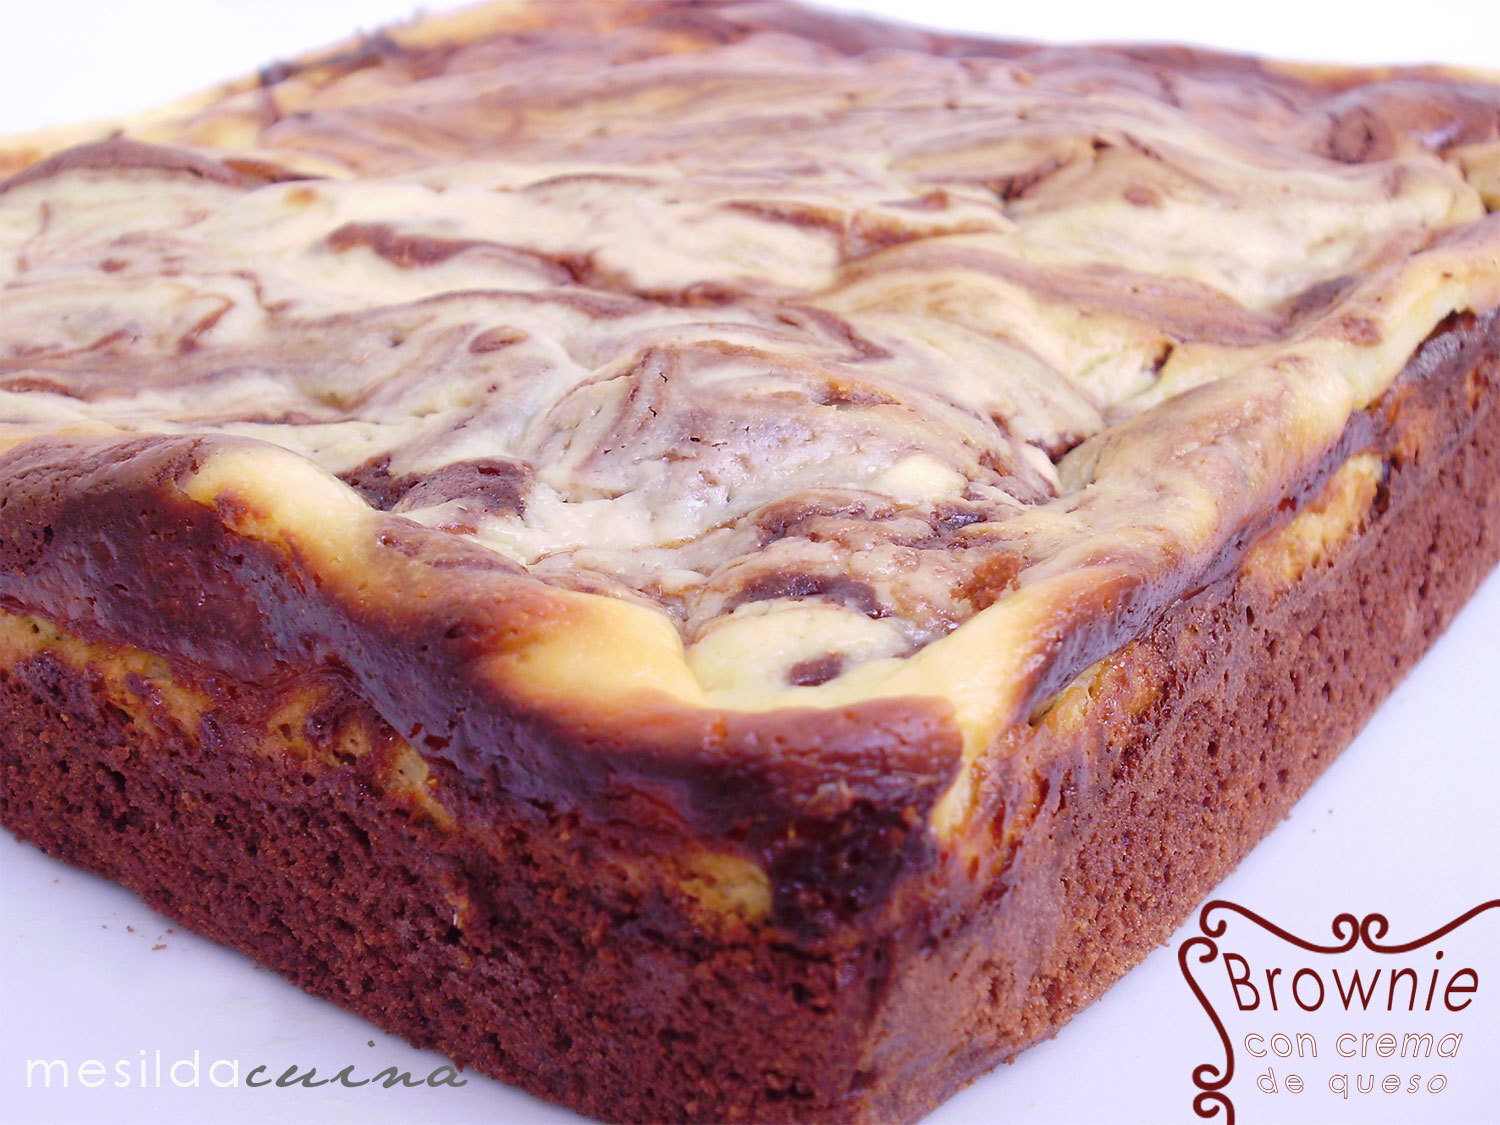 BROWNIE CON CREMA DE QUESO